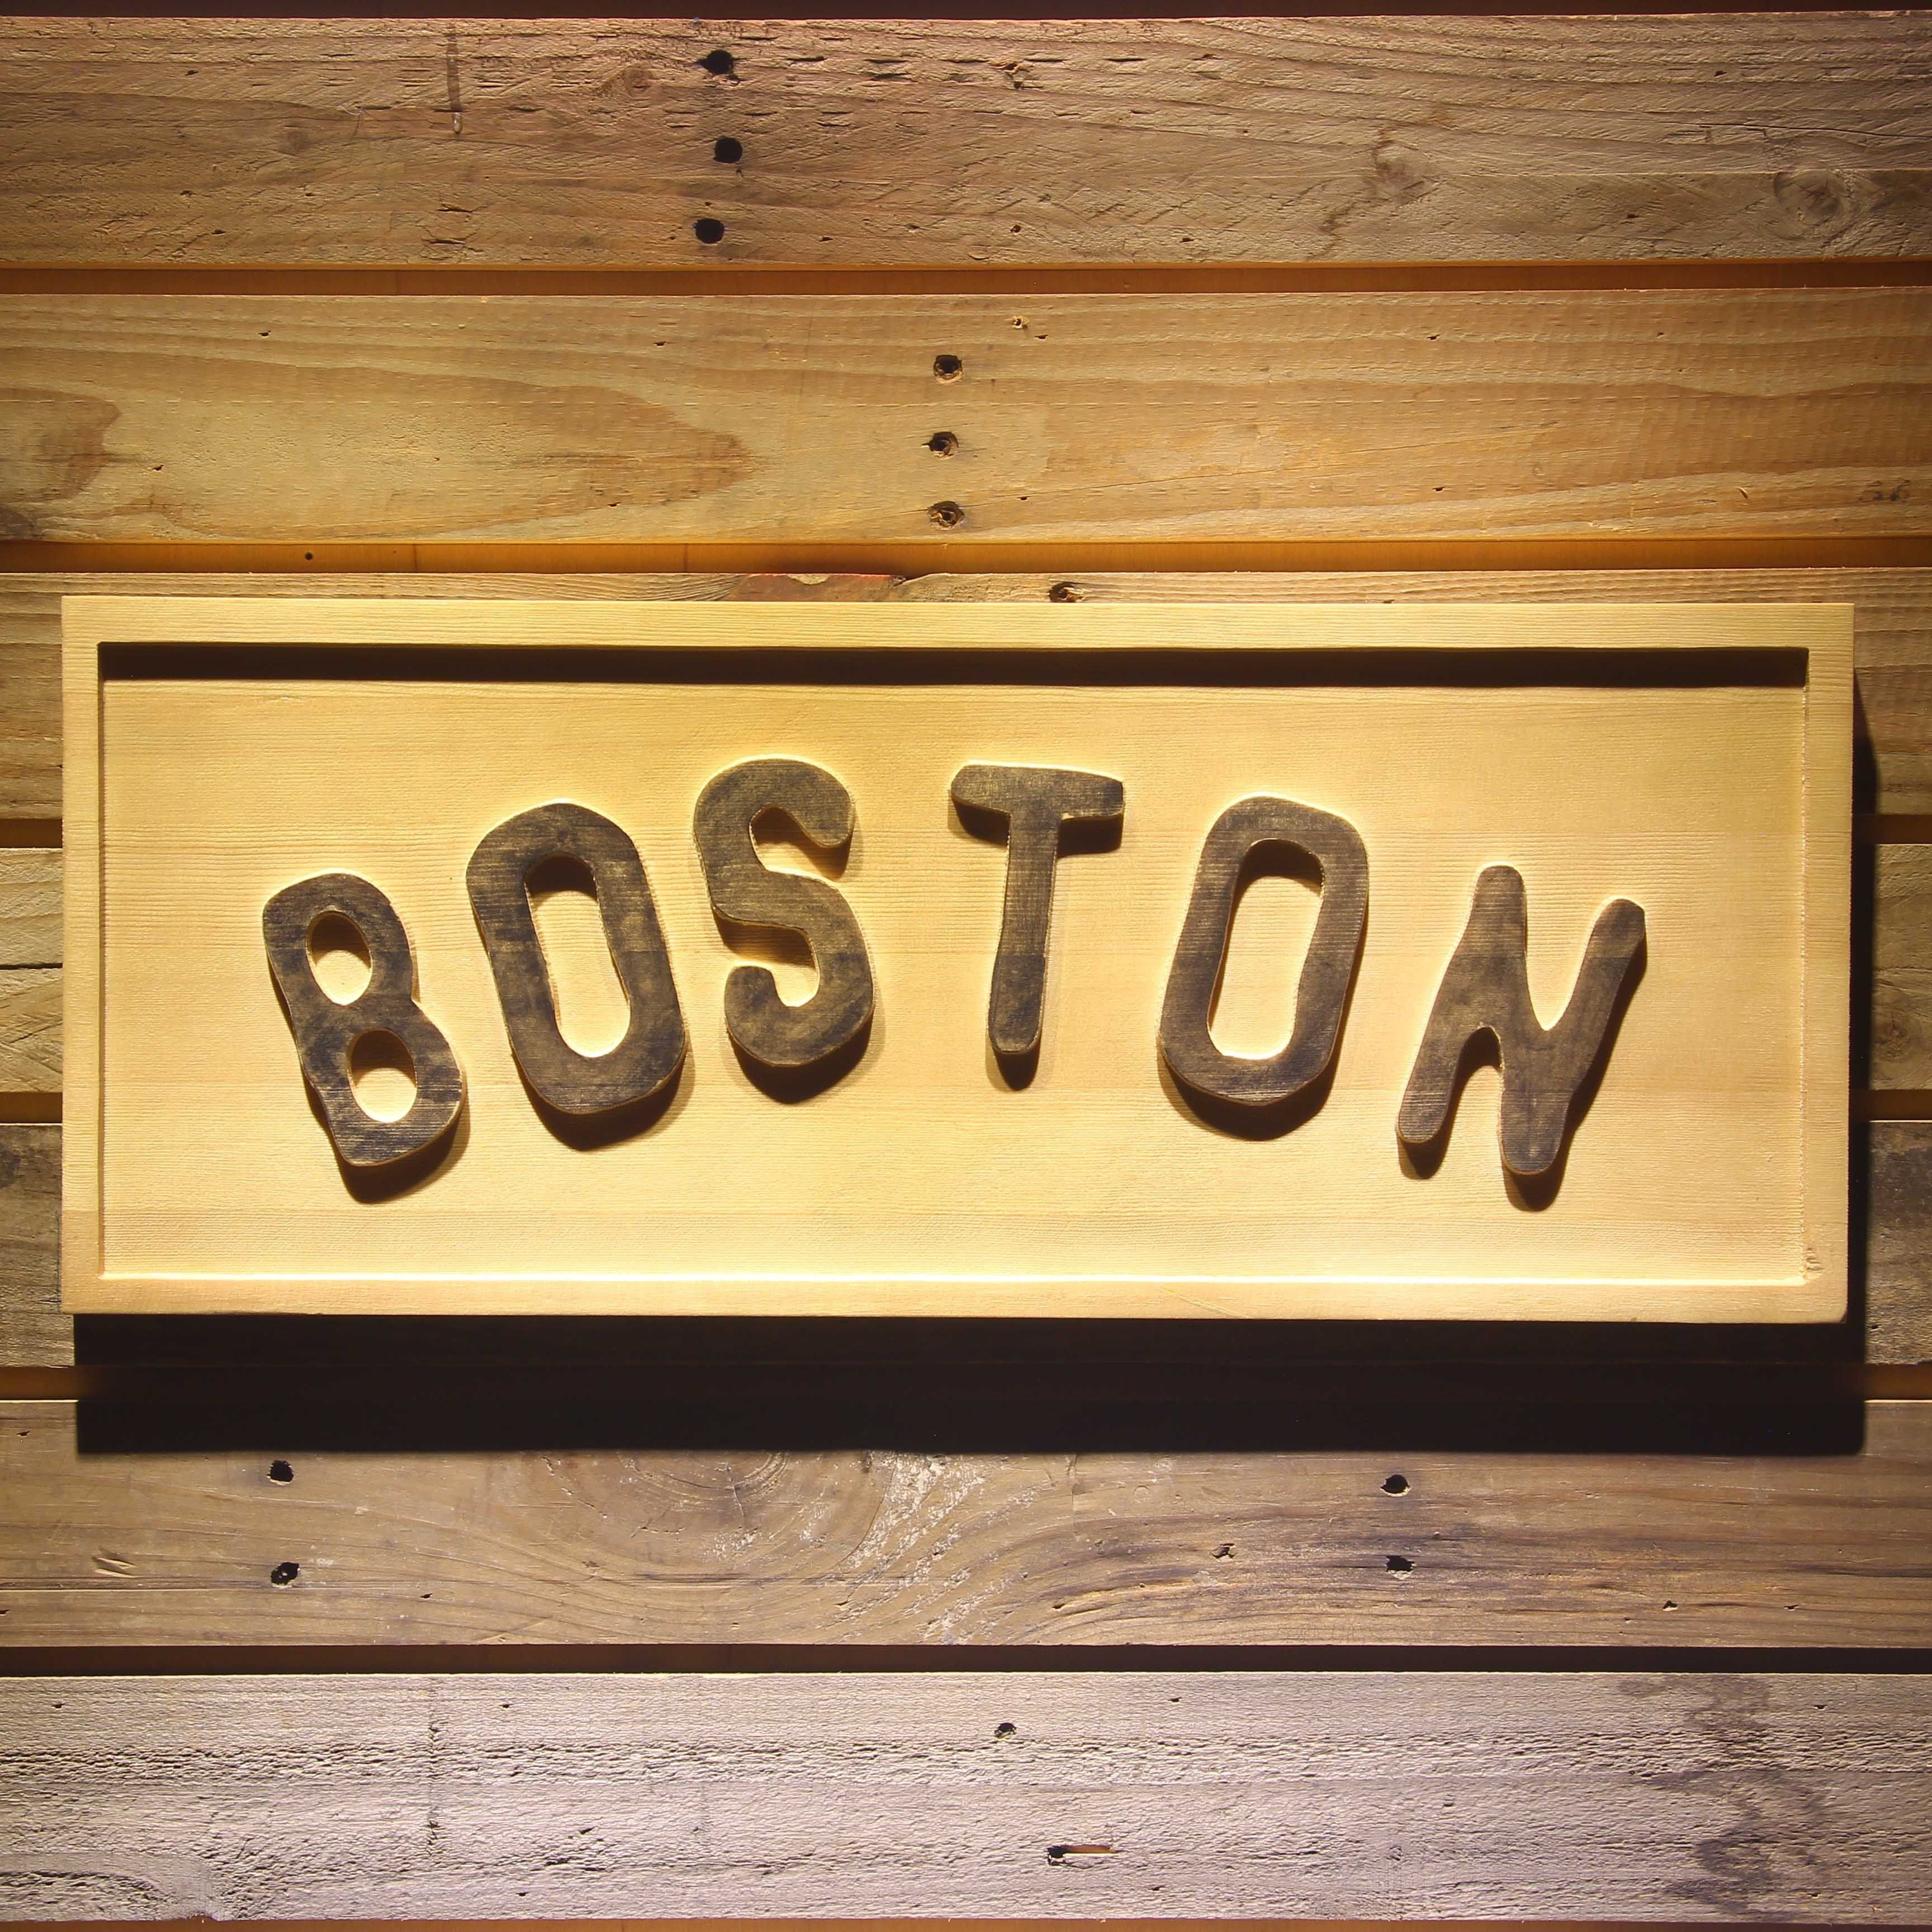 Boston Red Sox 1909-1911 Wooden Sign - Legacy Edition | Boston red ...